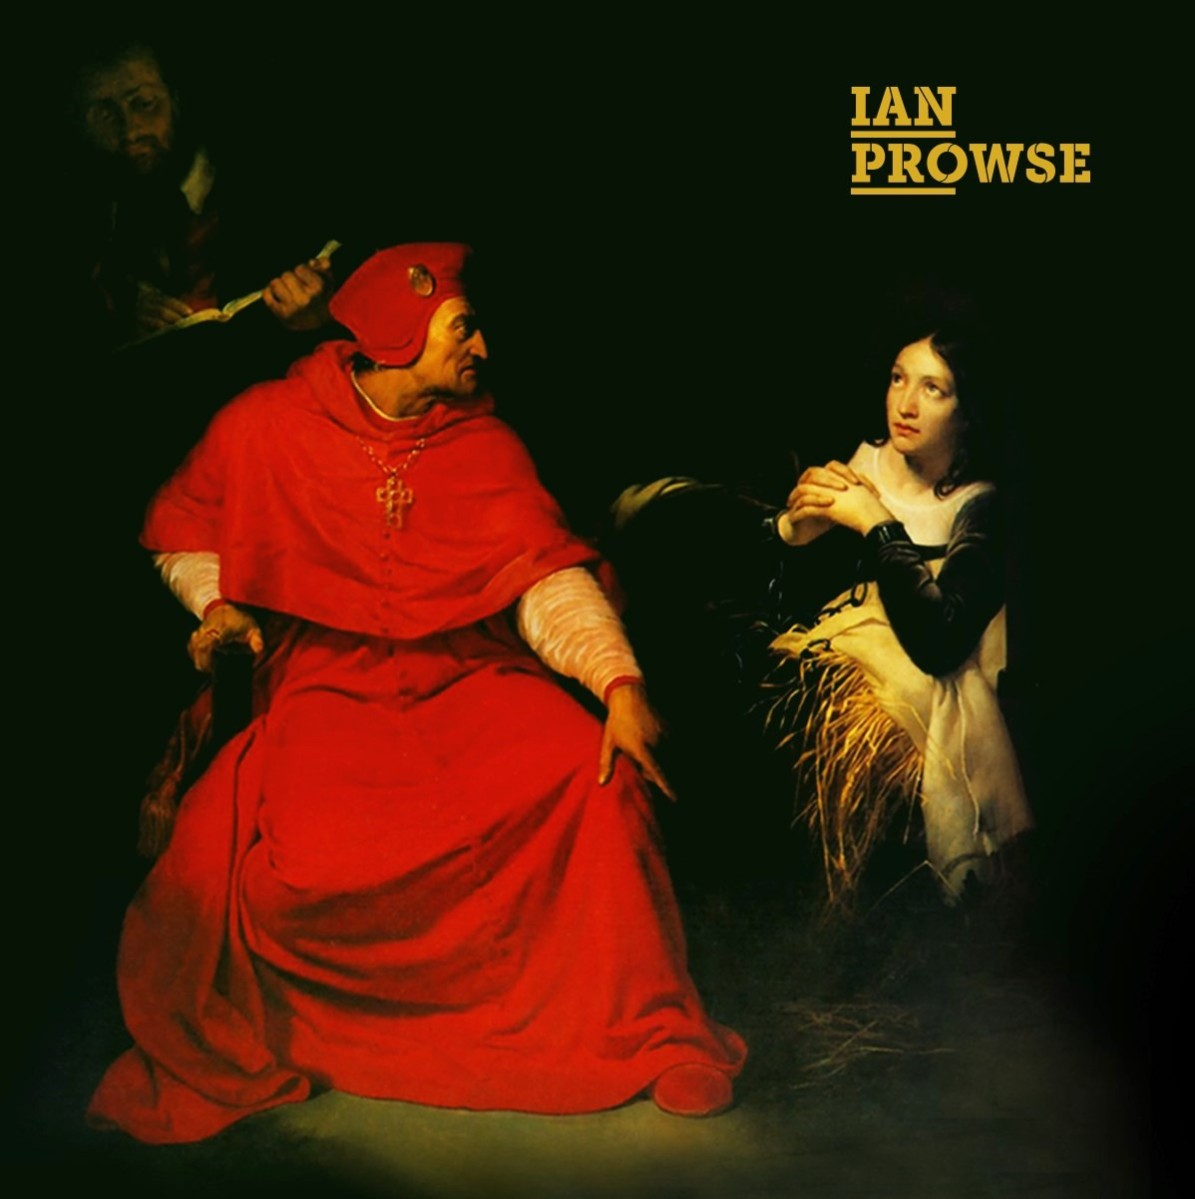 Here I Lie - Ian Prowse (reviewed by T. Bebedor)